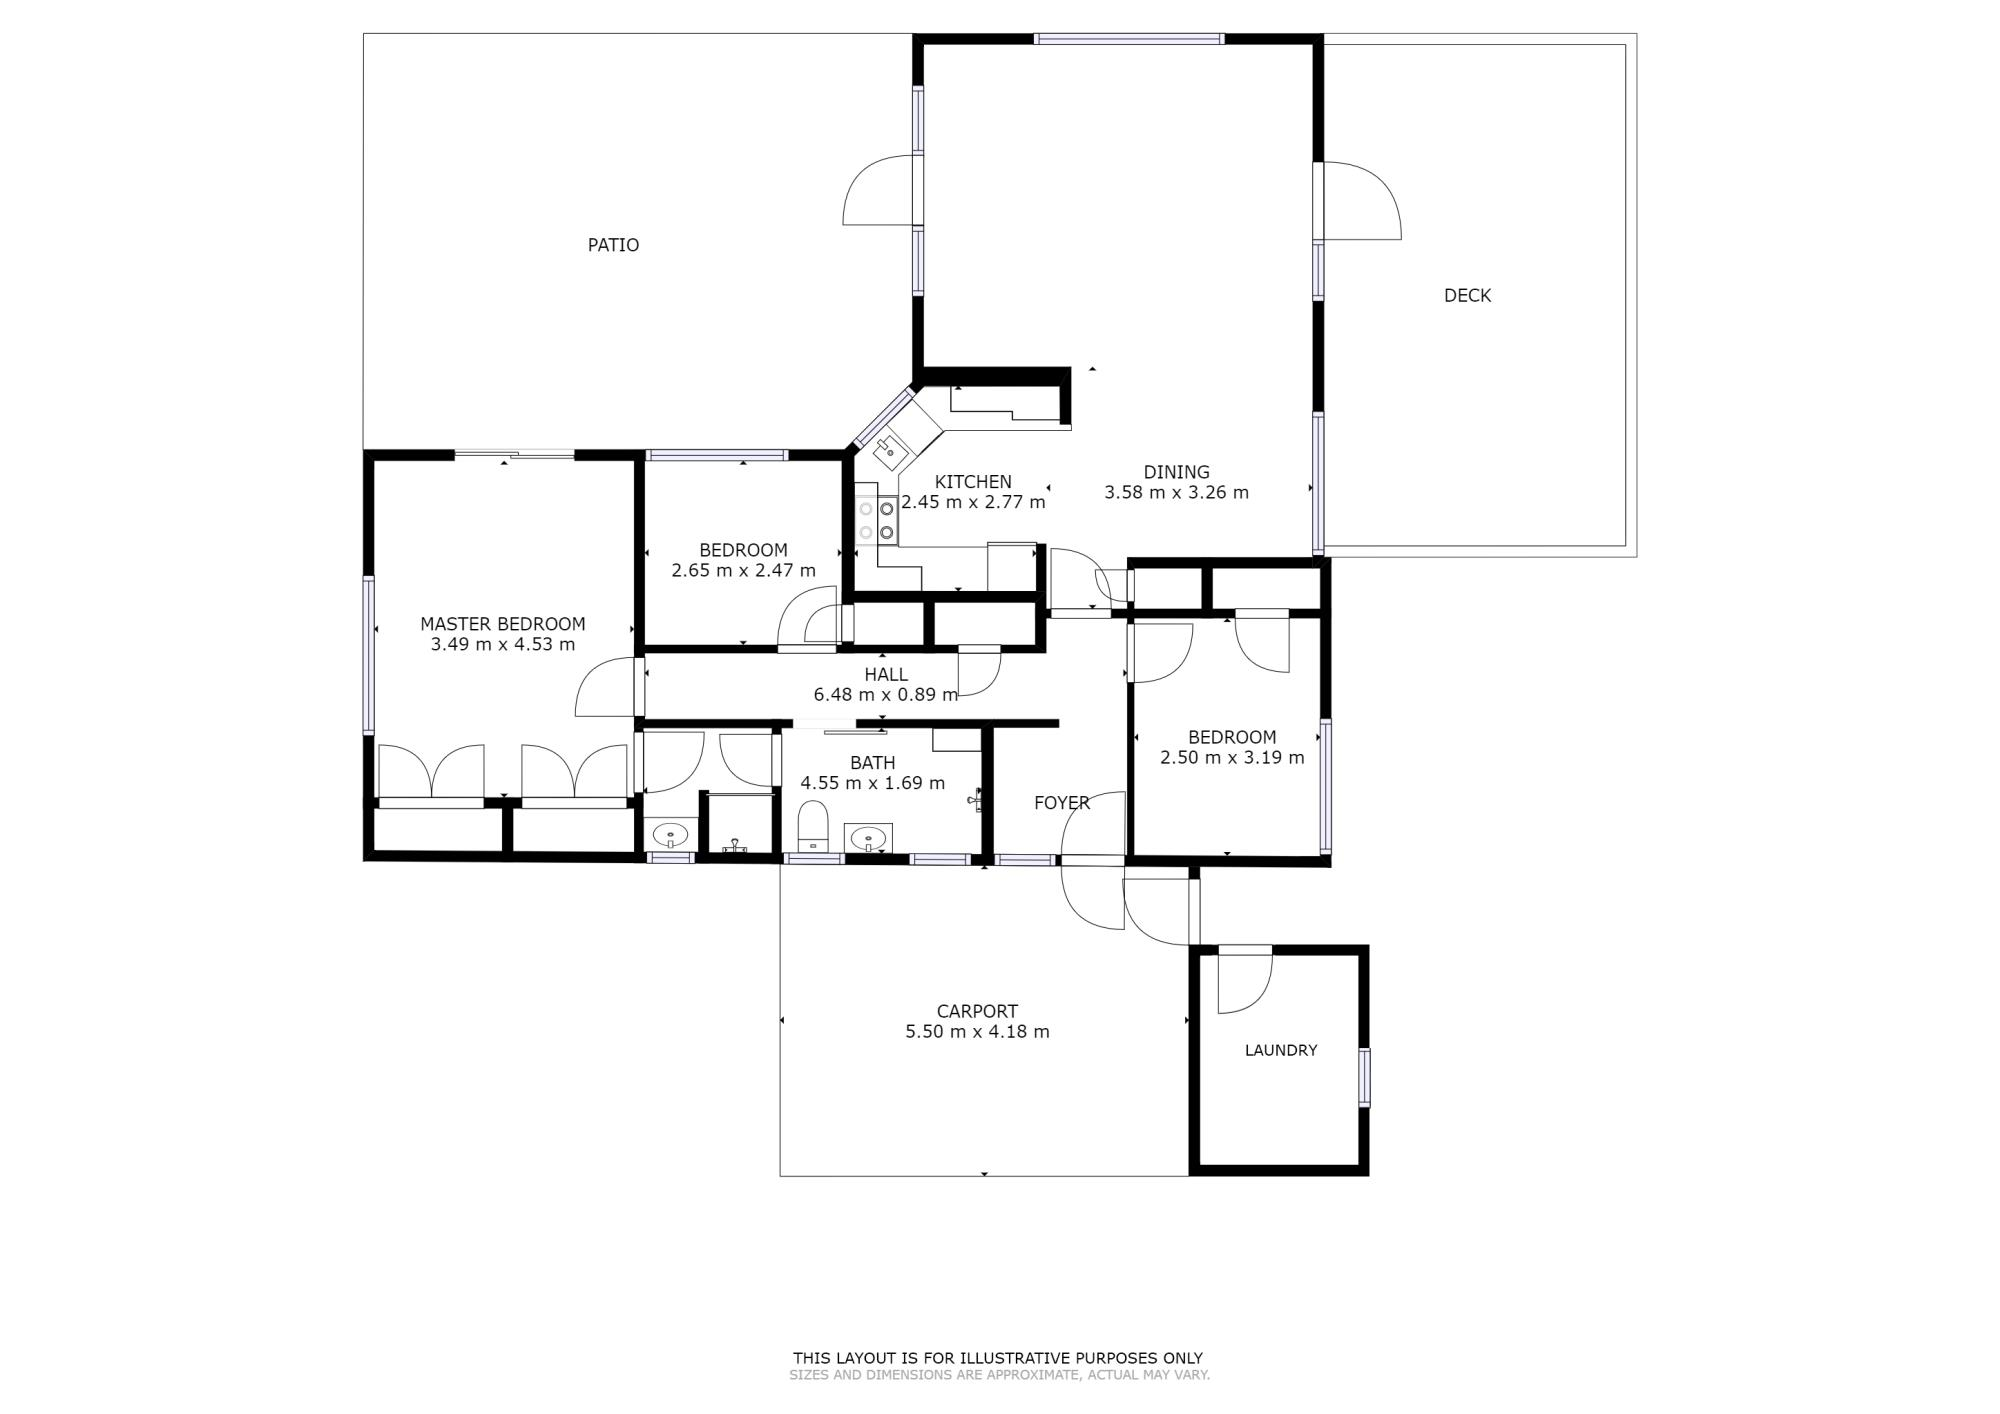 102A Kiripaka Road Tikipungaproperty floorplan image